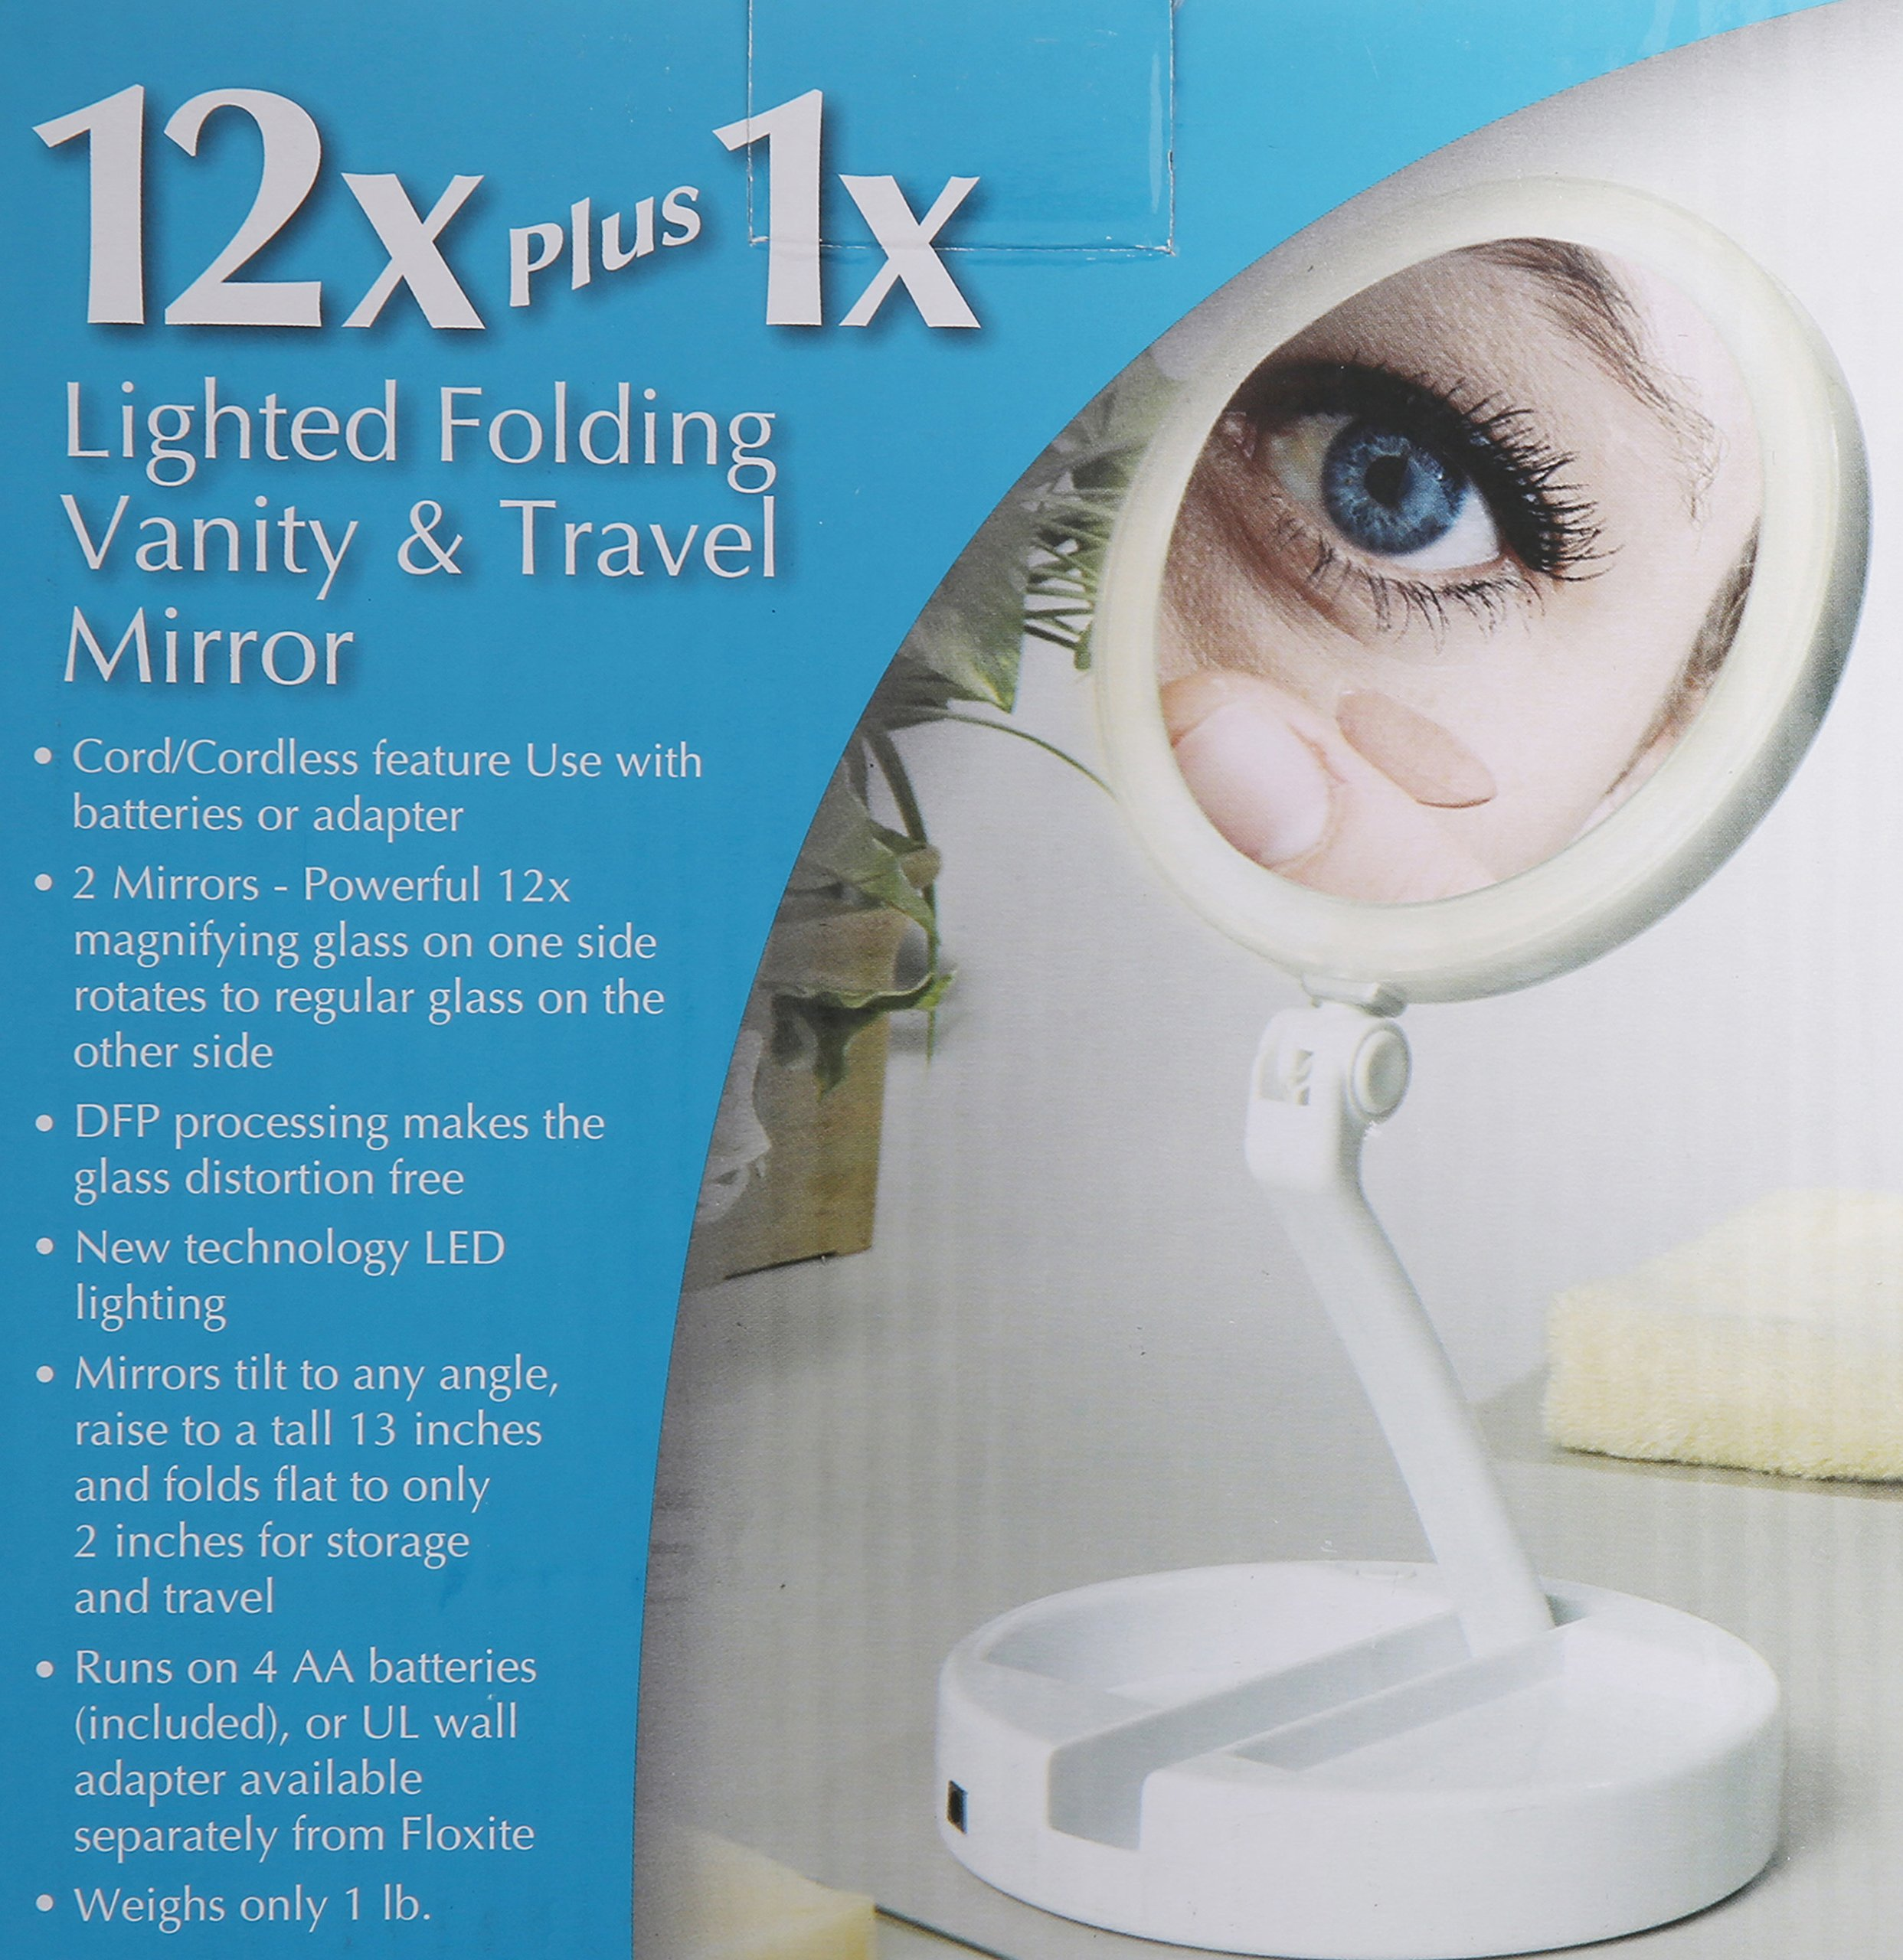 Floxite 7504-12l 12x LED Lighted Folding Vanity and Travel Mirror, White, Frosted White by Floxite (Image #4)